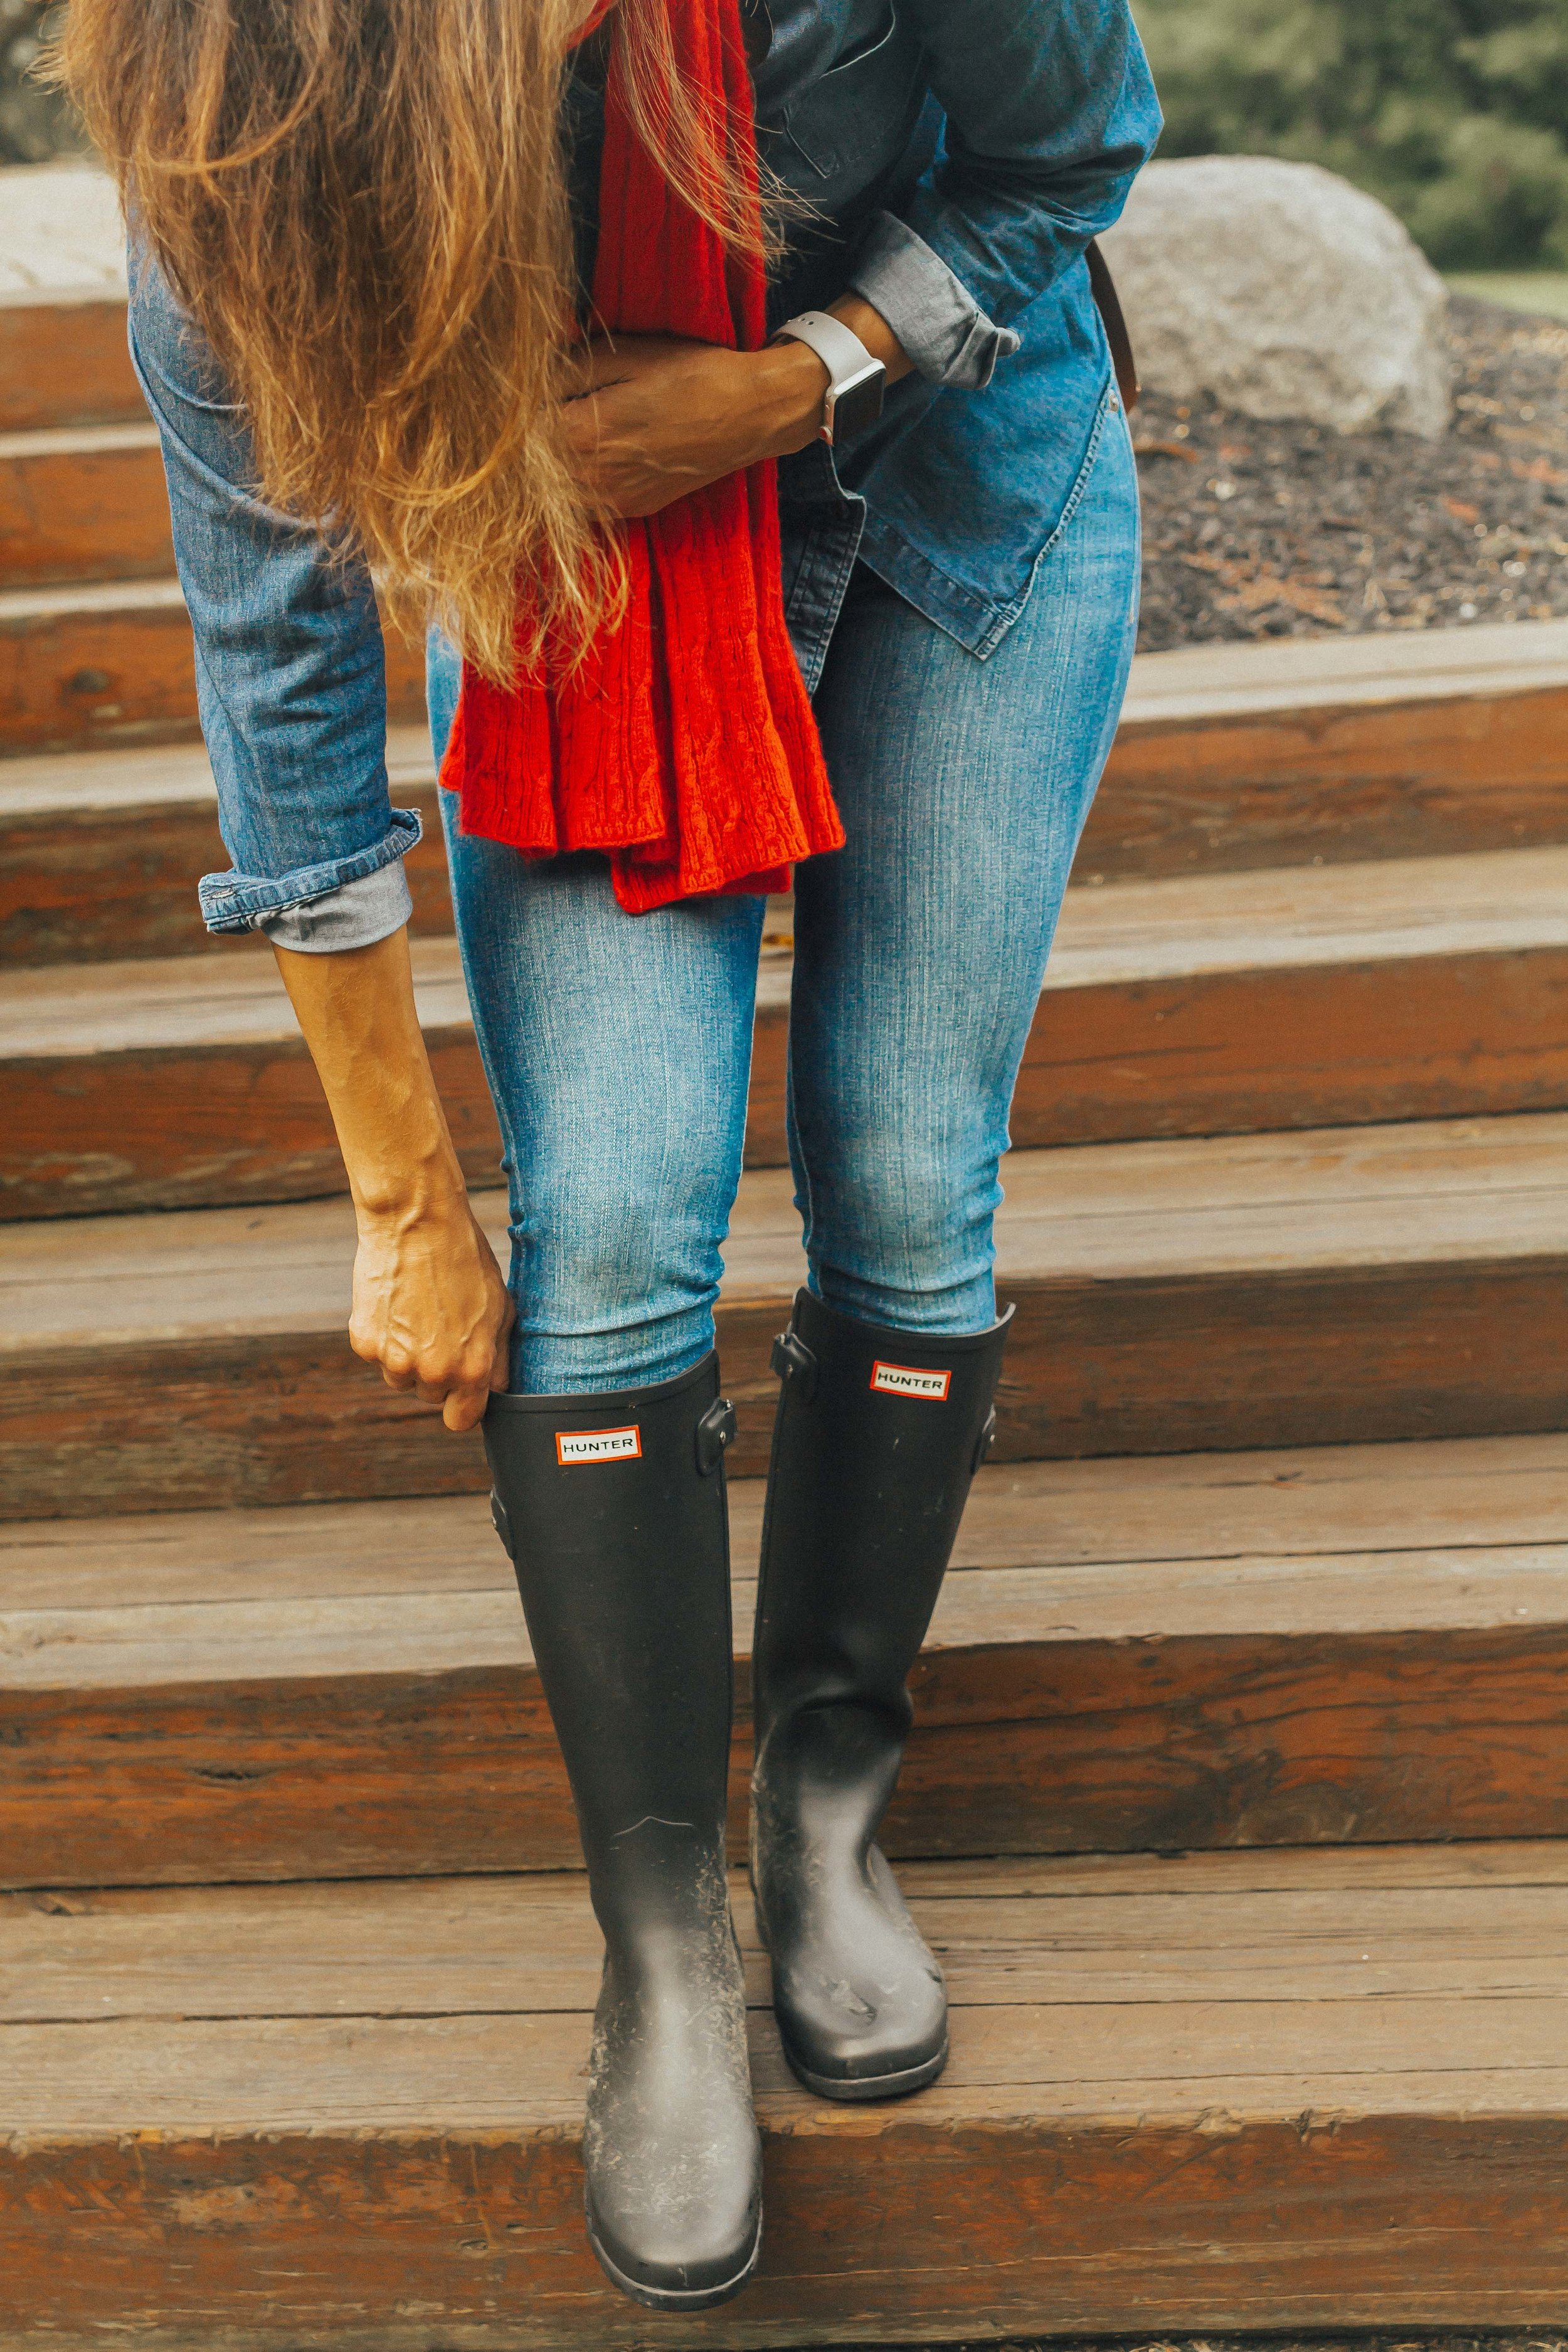 OUTFIT DETAILS - HUNTER BOOTSRED SCARF (similar)JEANSCHAMBRAY SHIRT